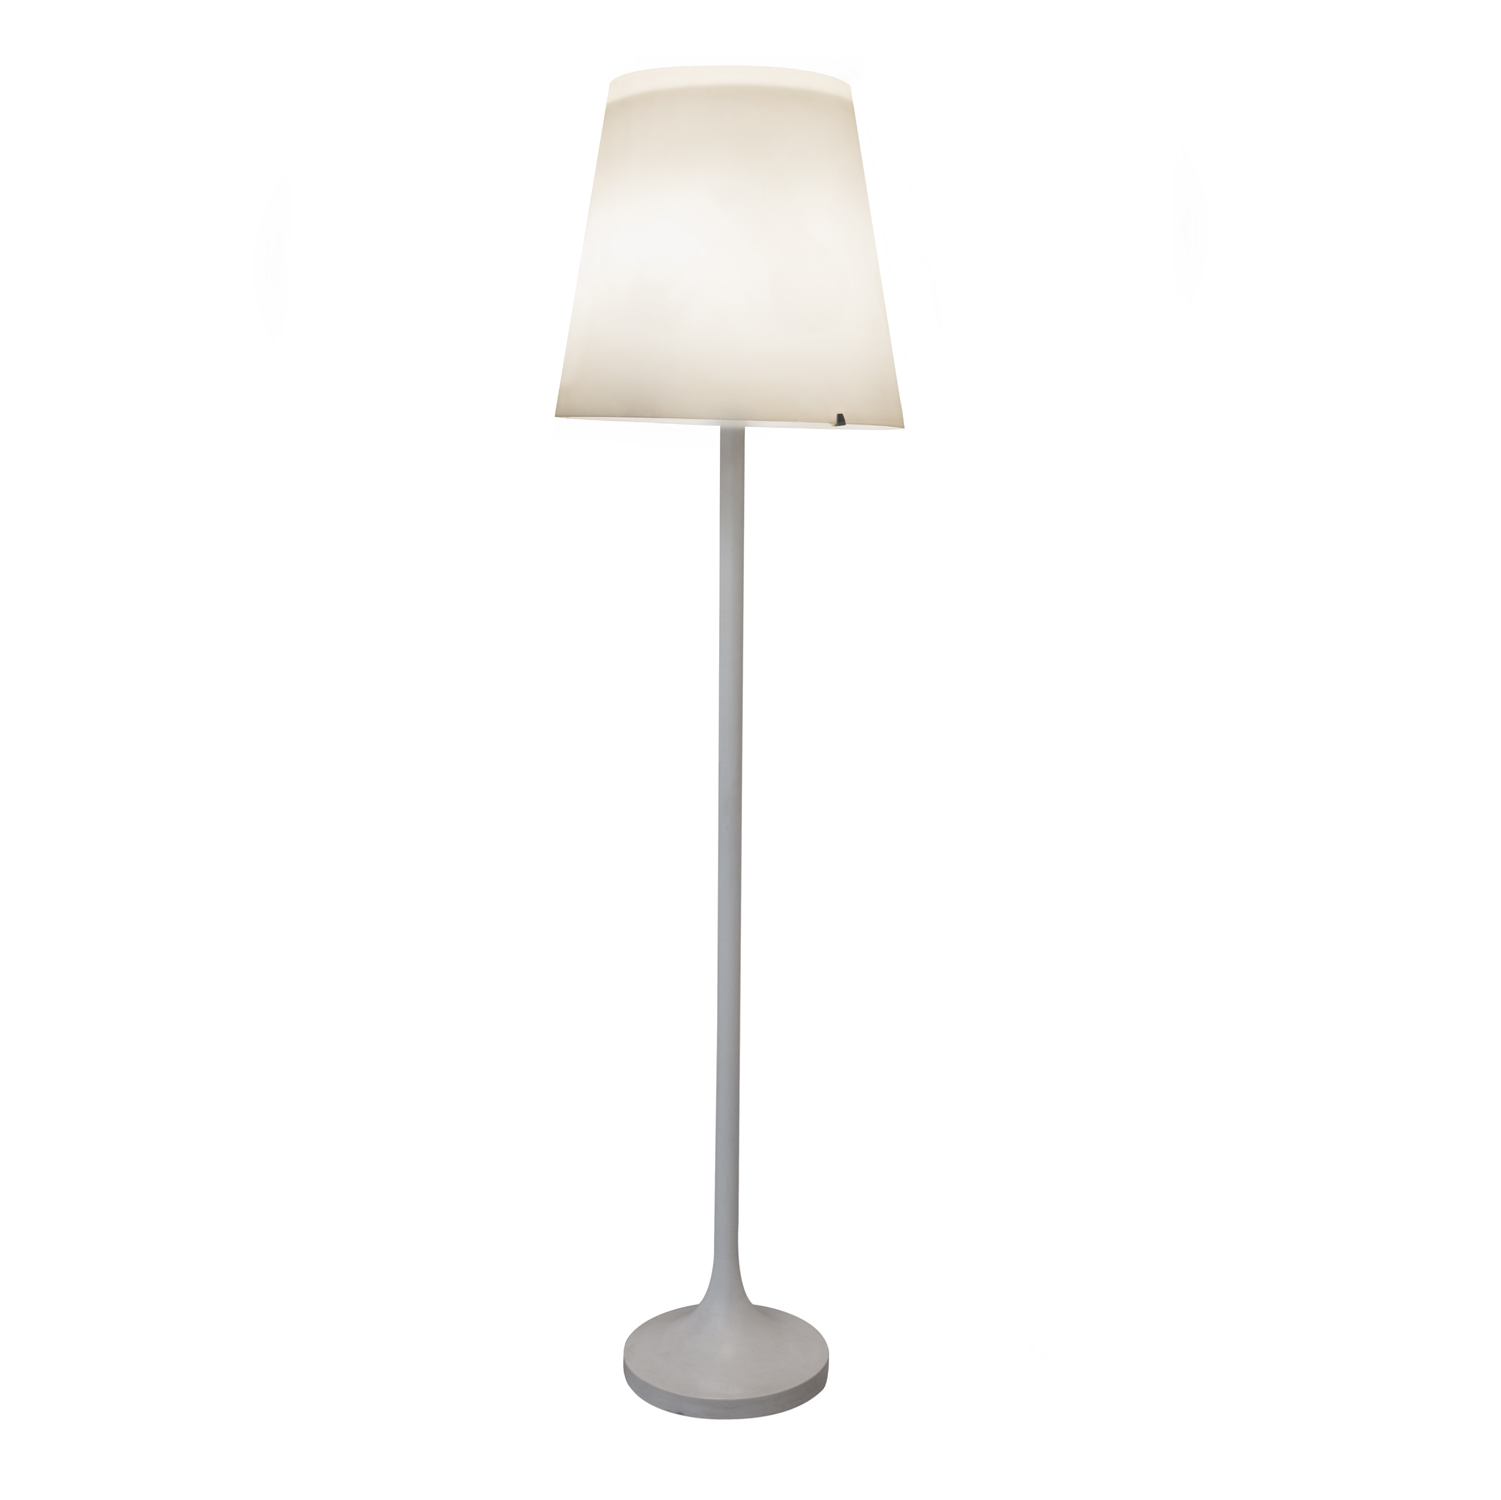 fontana-arte-floor-lamp_galleria_michela_cattai